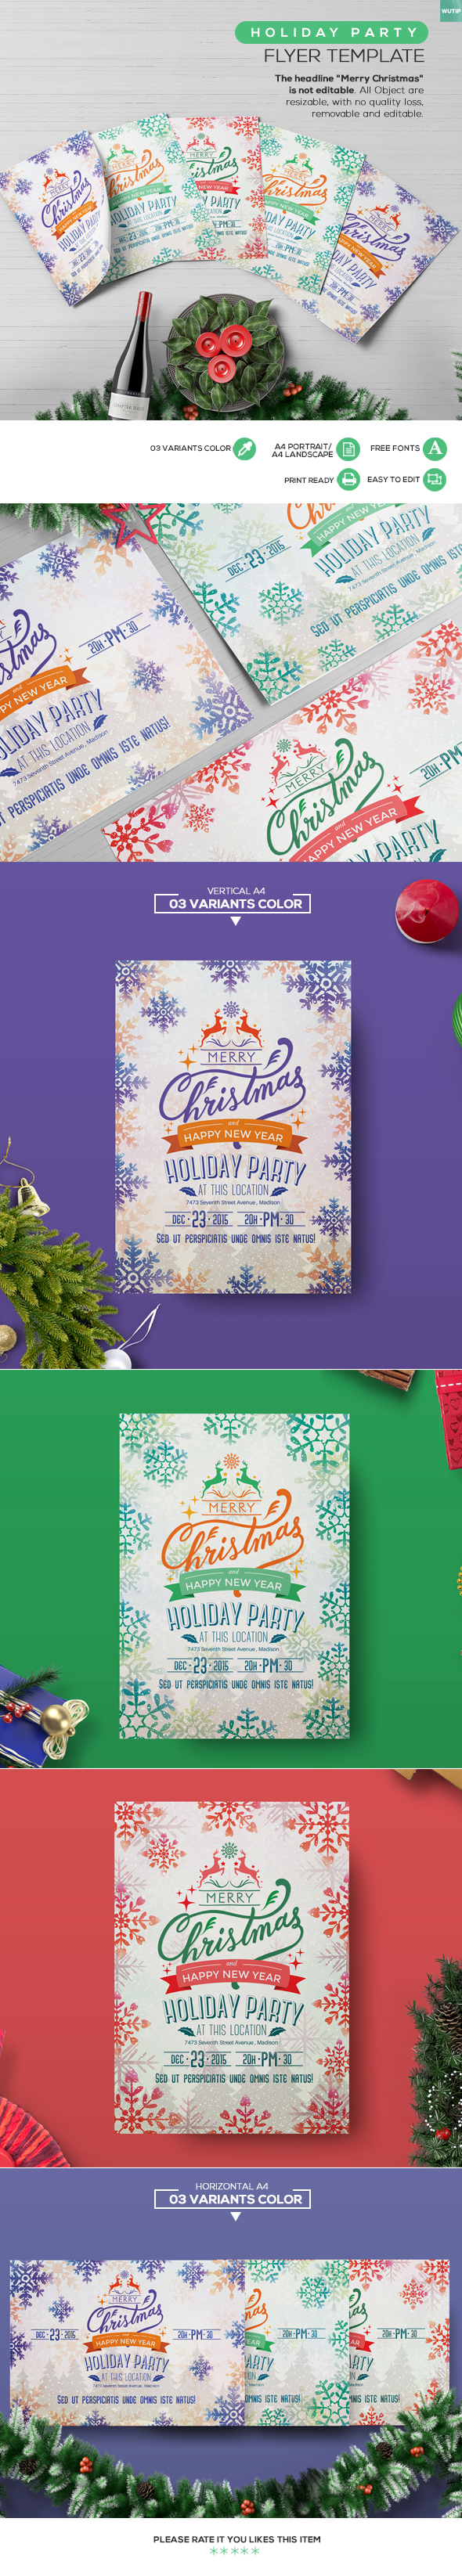 Holiday Party Flyer Template Templates Pinterest Party Flyer